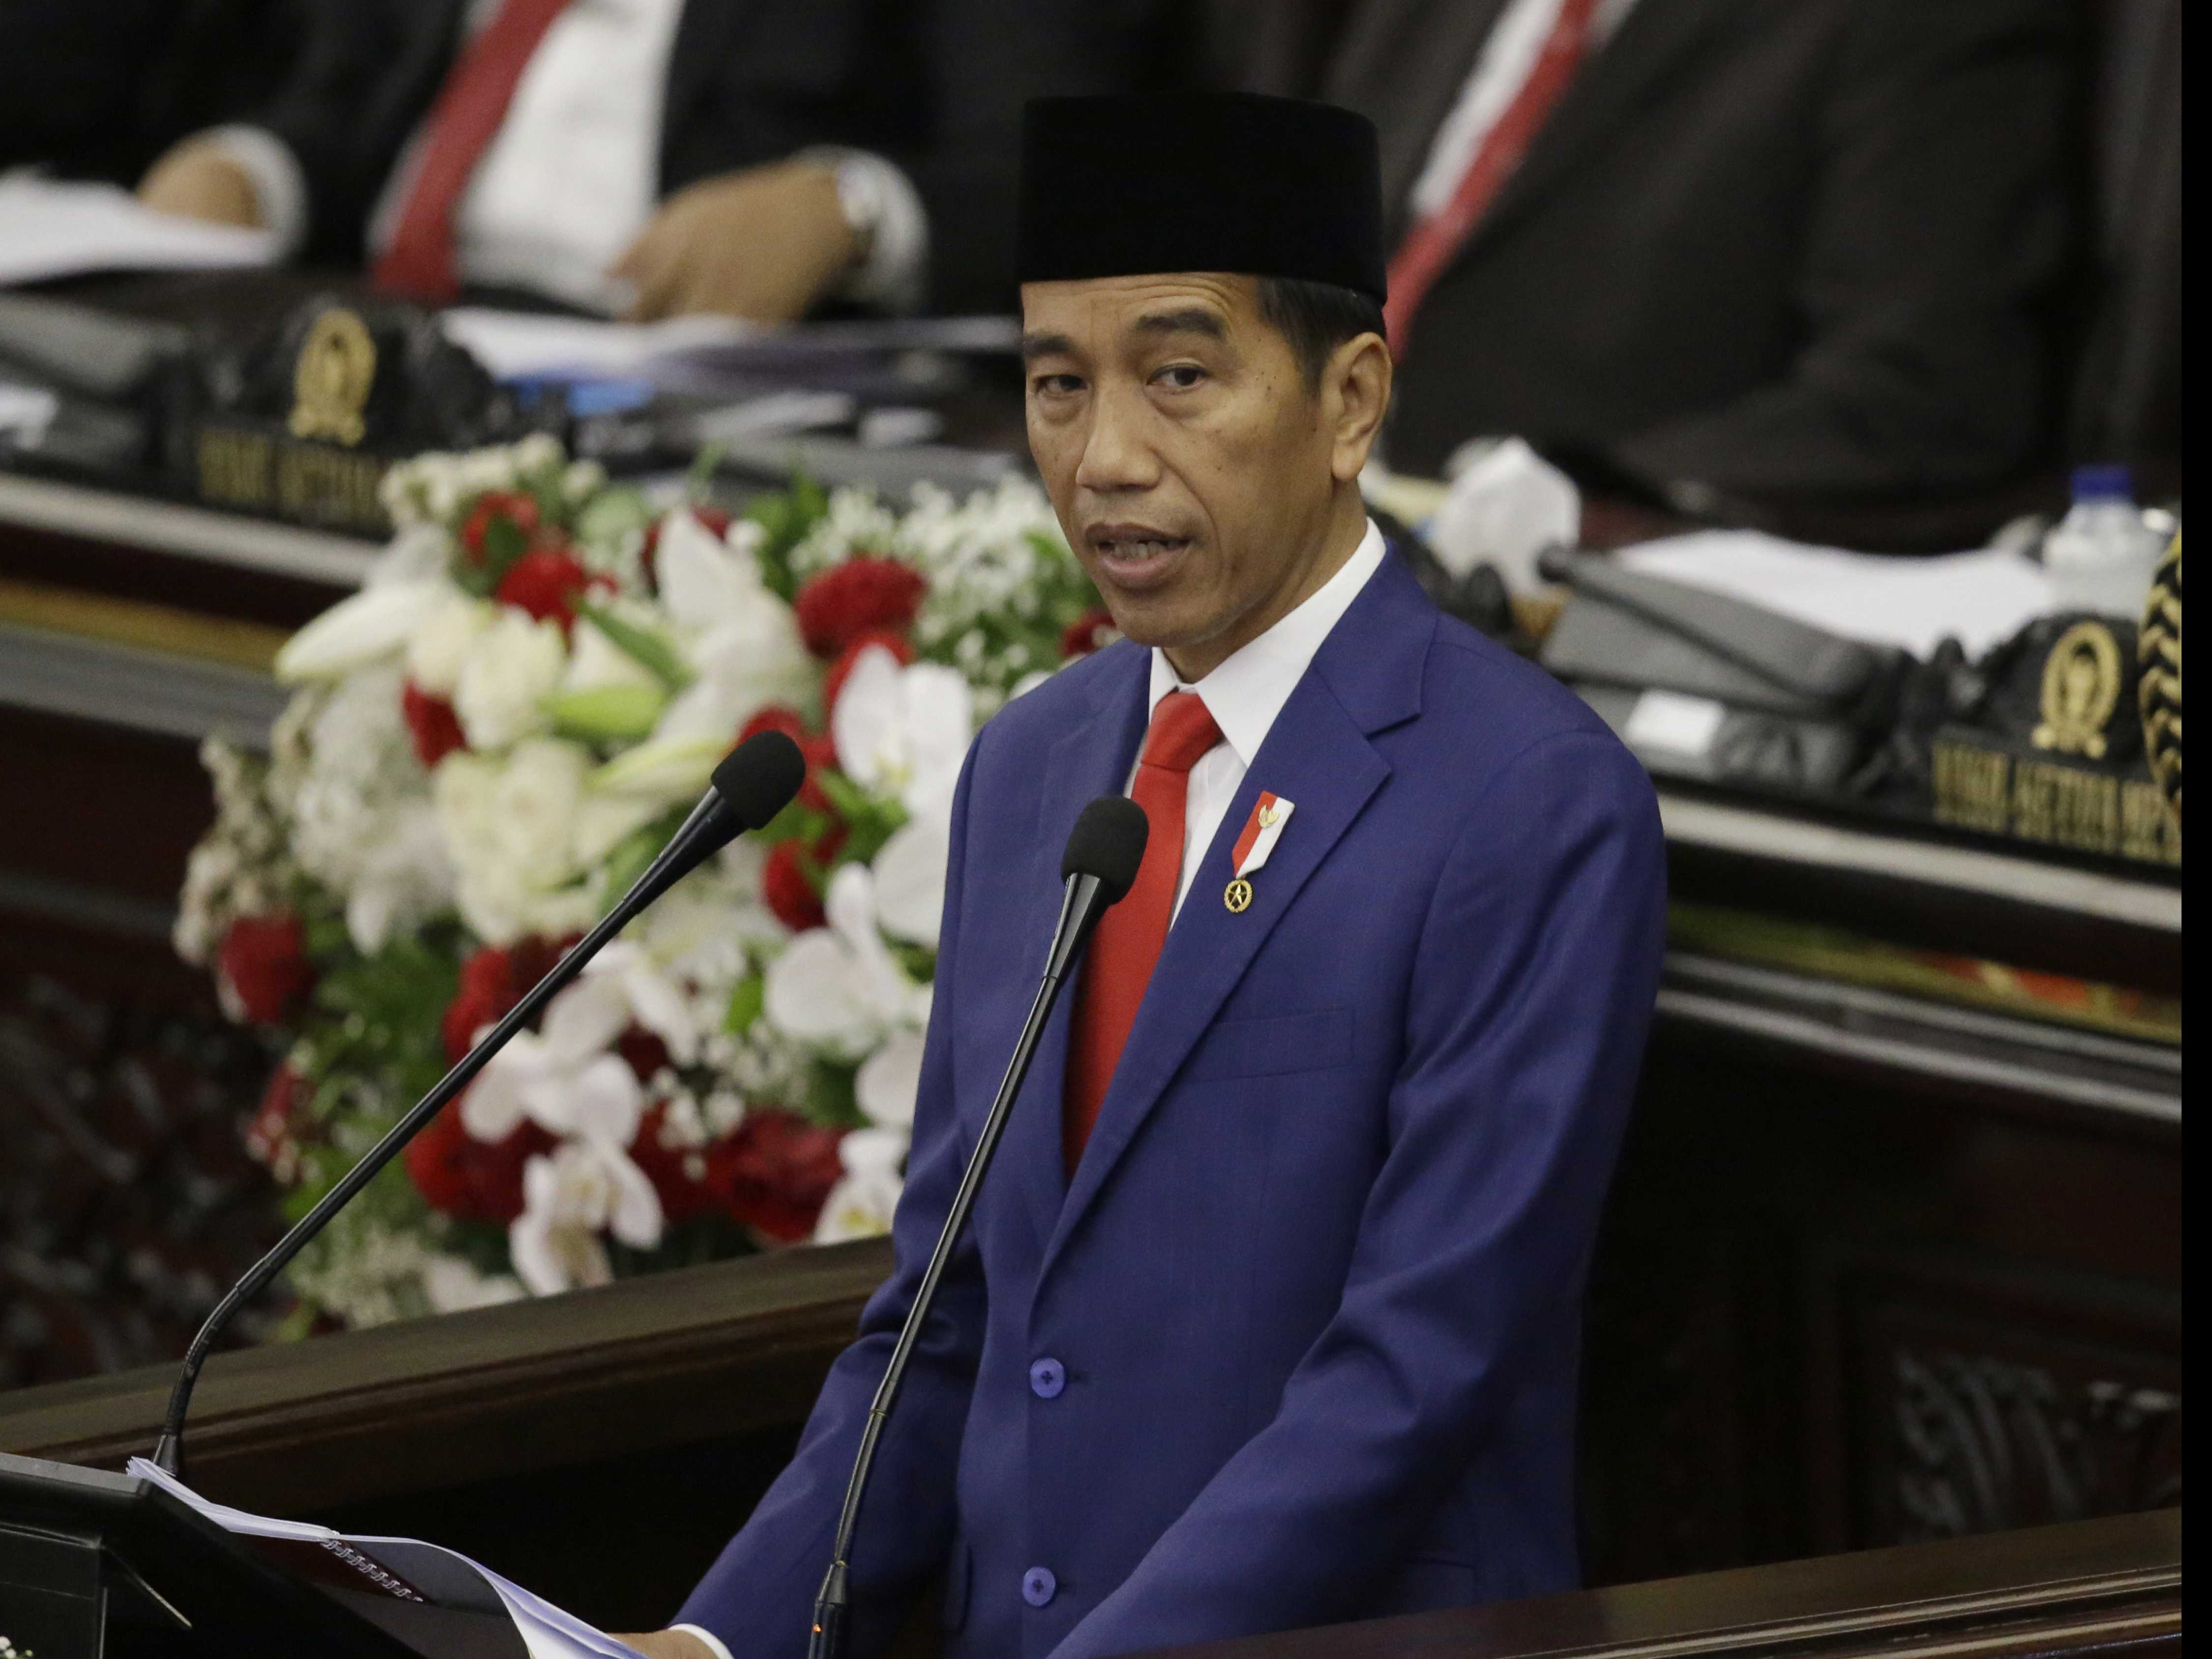 Indonesian President Urges Tolerance in Annual Speech